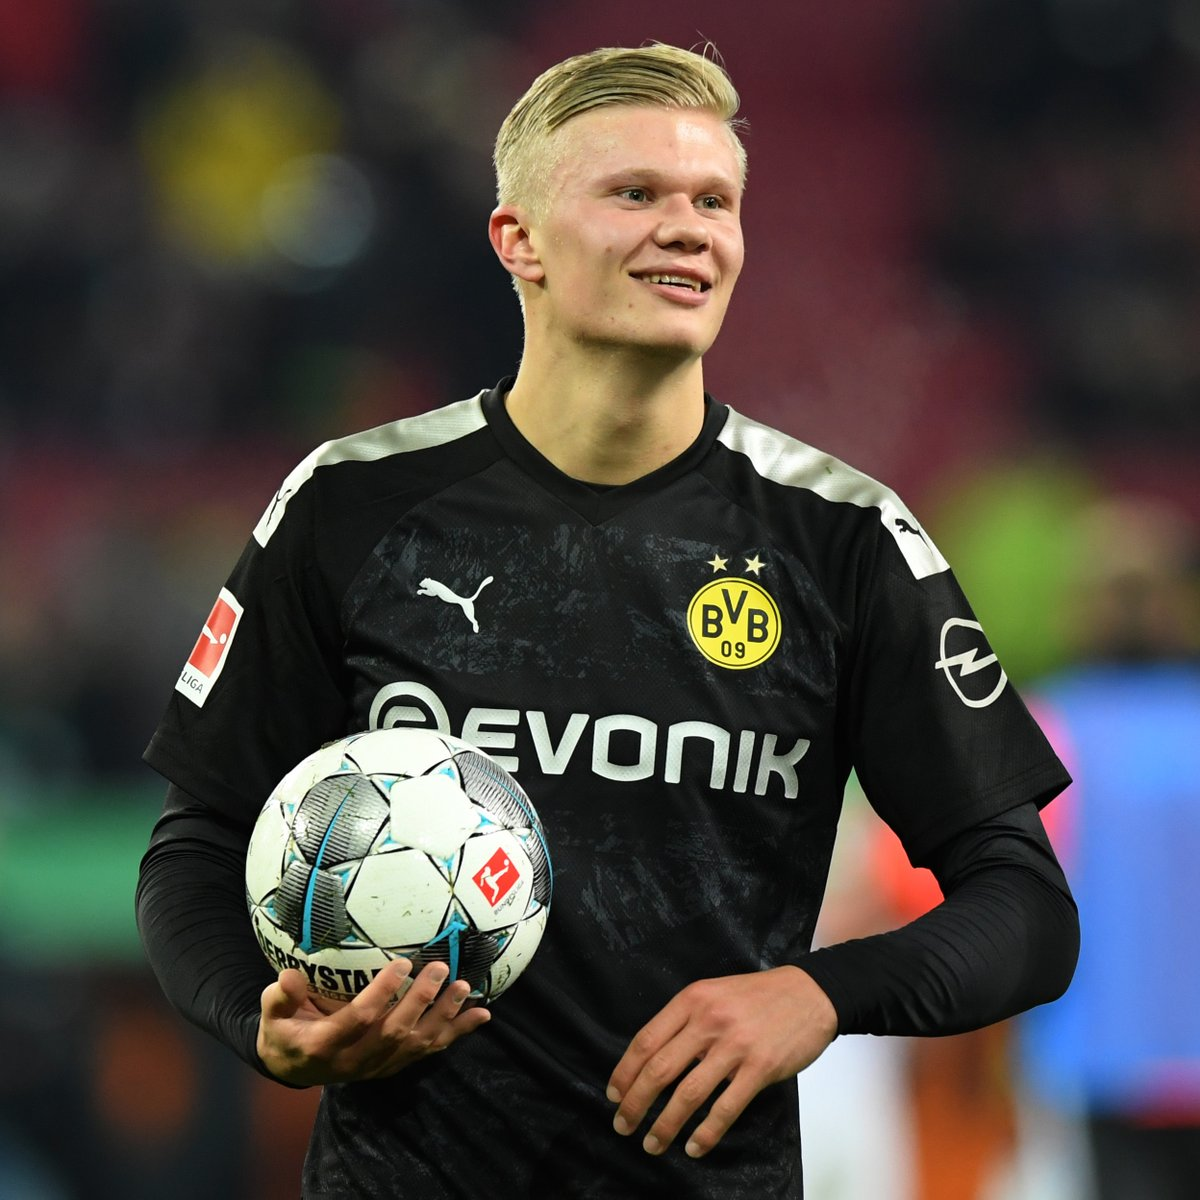 Goal Ar Twitter Real Madrid Have Identified Borussia Dortmund Forward Erling Haaland As Their Number One Summer Transfer Target According To Marca Https T Co T3shdw1trc